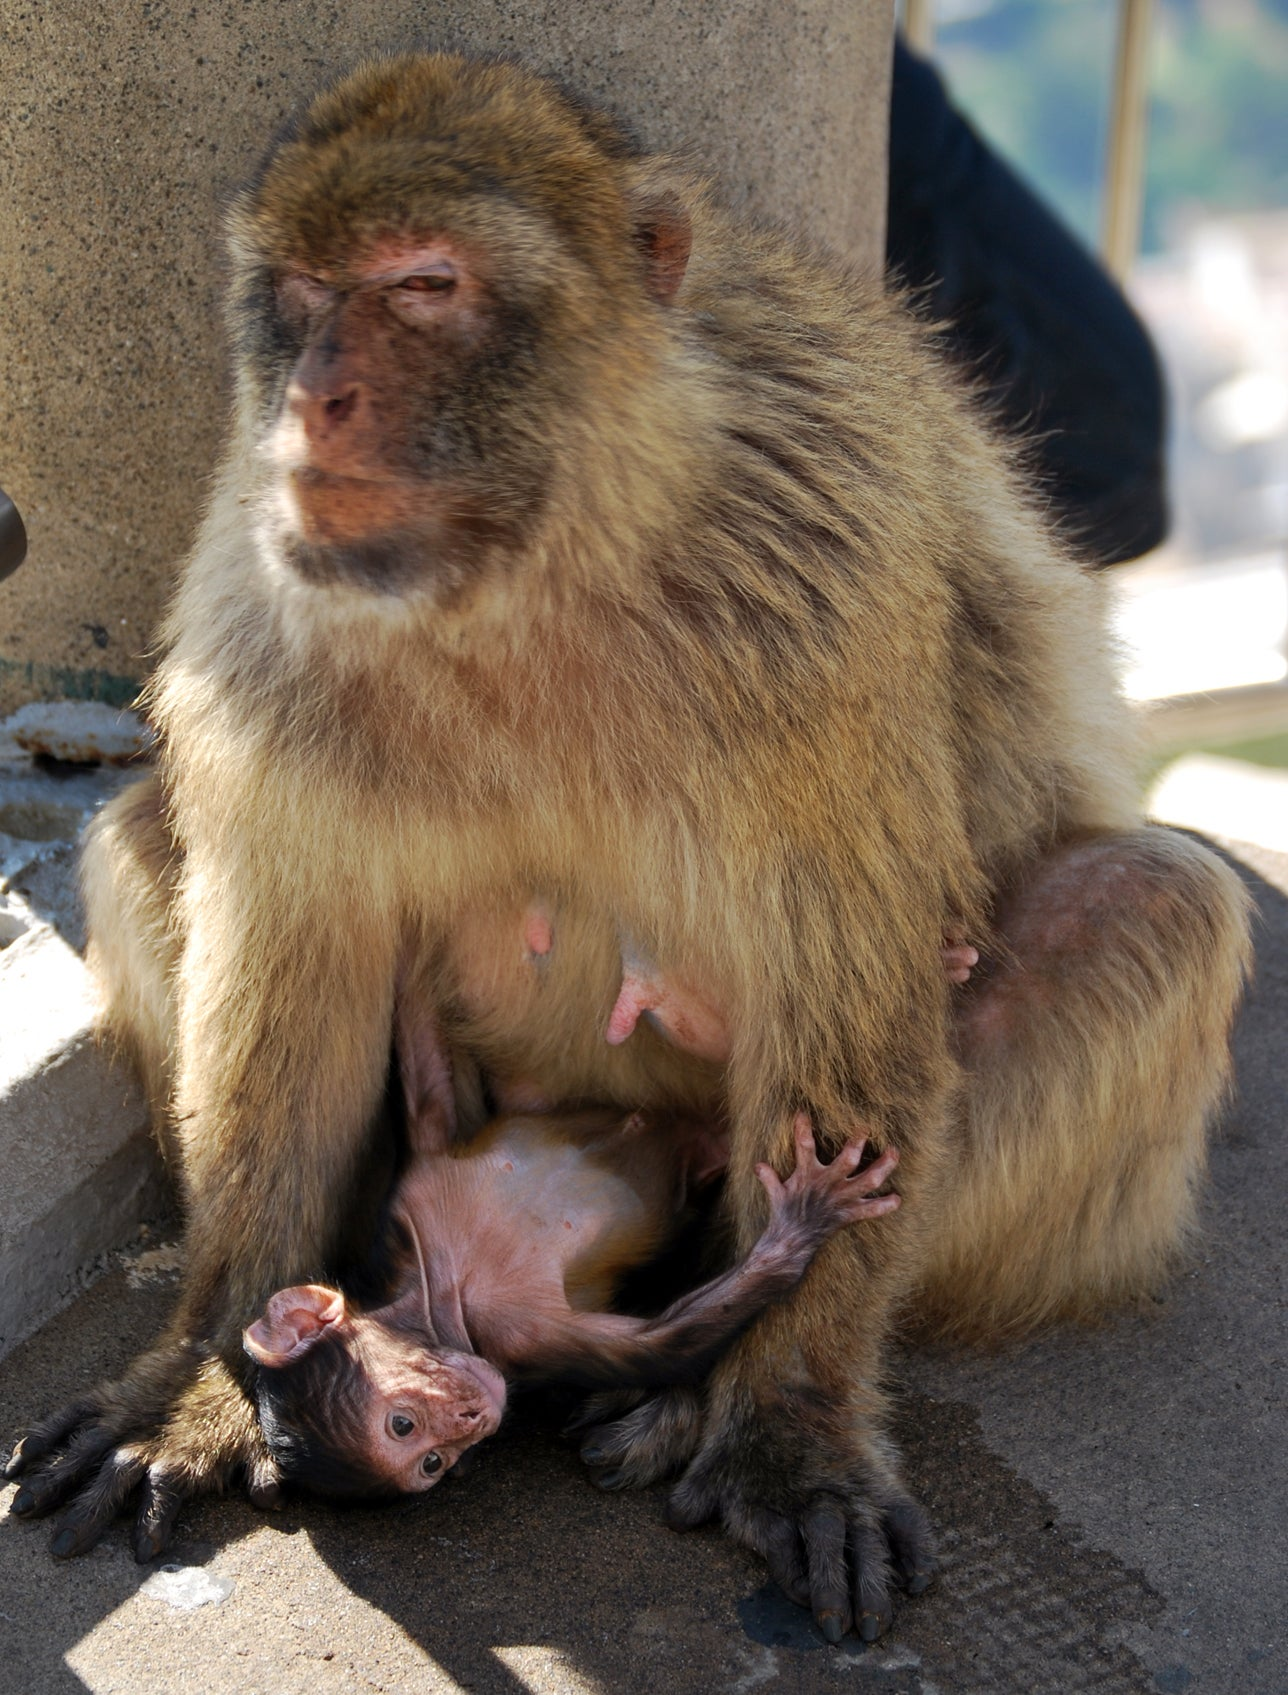 Japanese Macaque in Apes' Den